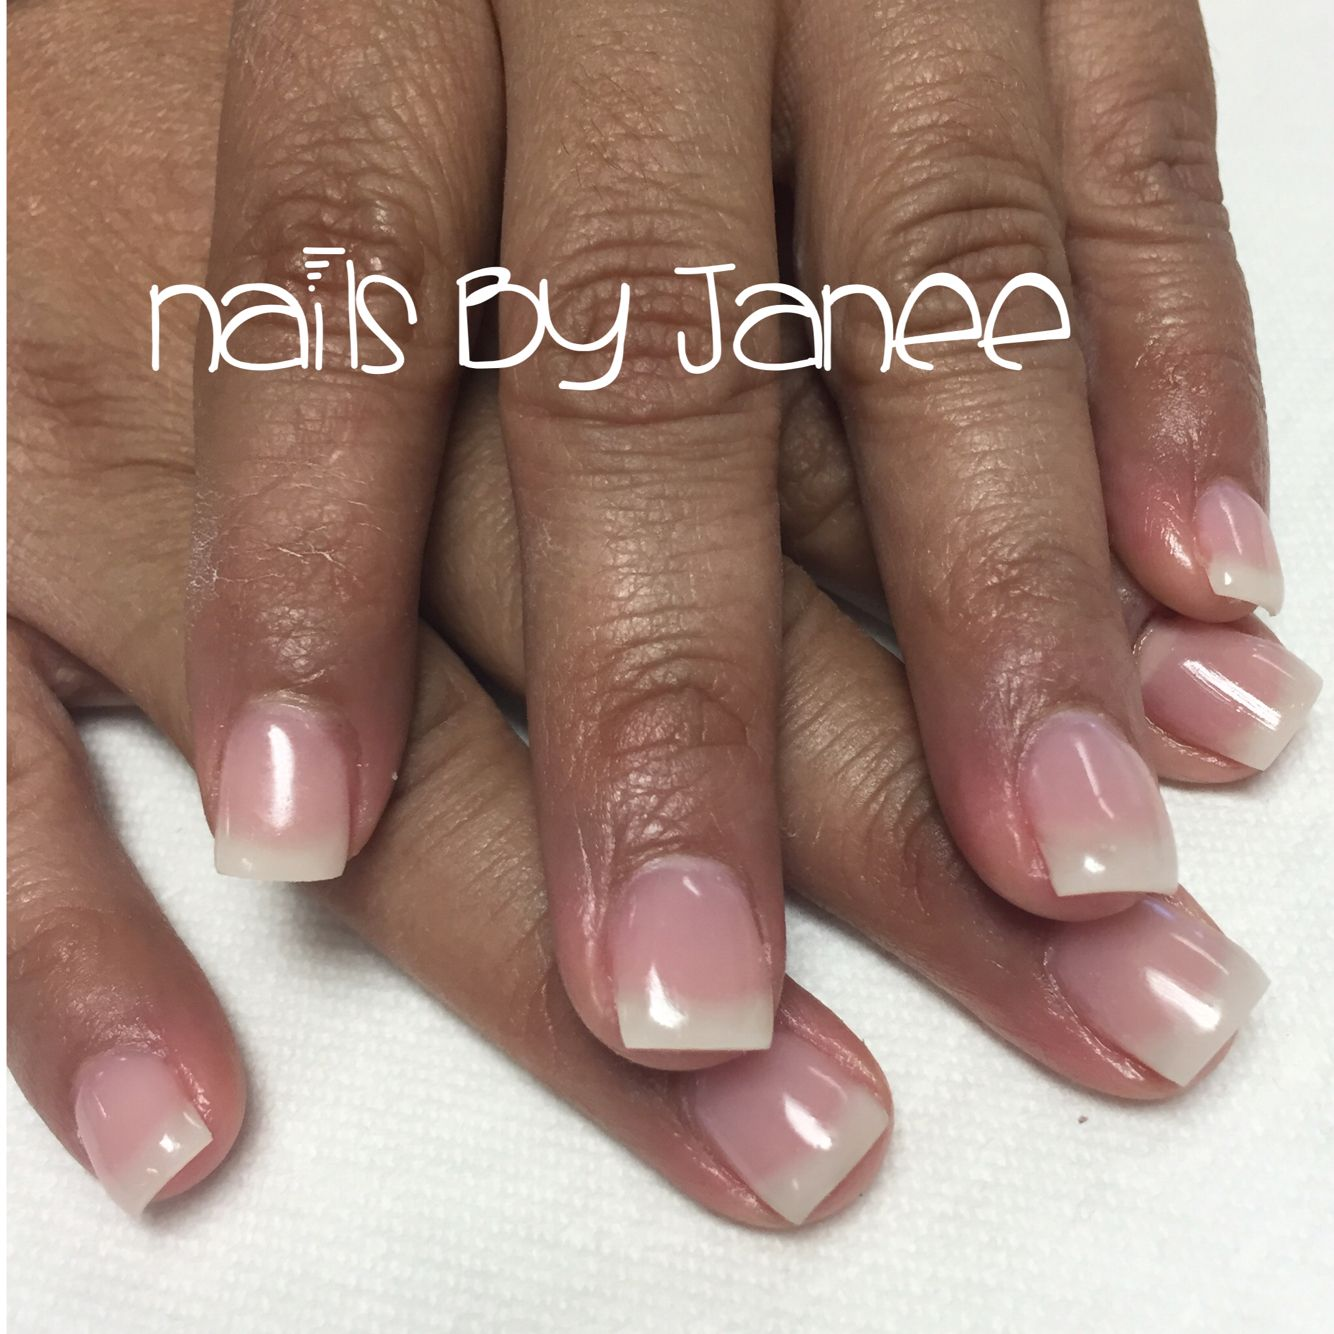 Natural nail gel overlay | Nails by Janee at A Wild Hair Salon Reno ...